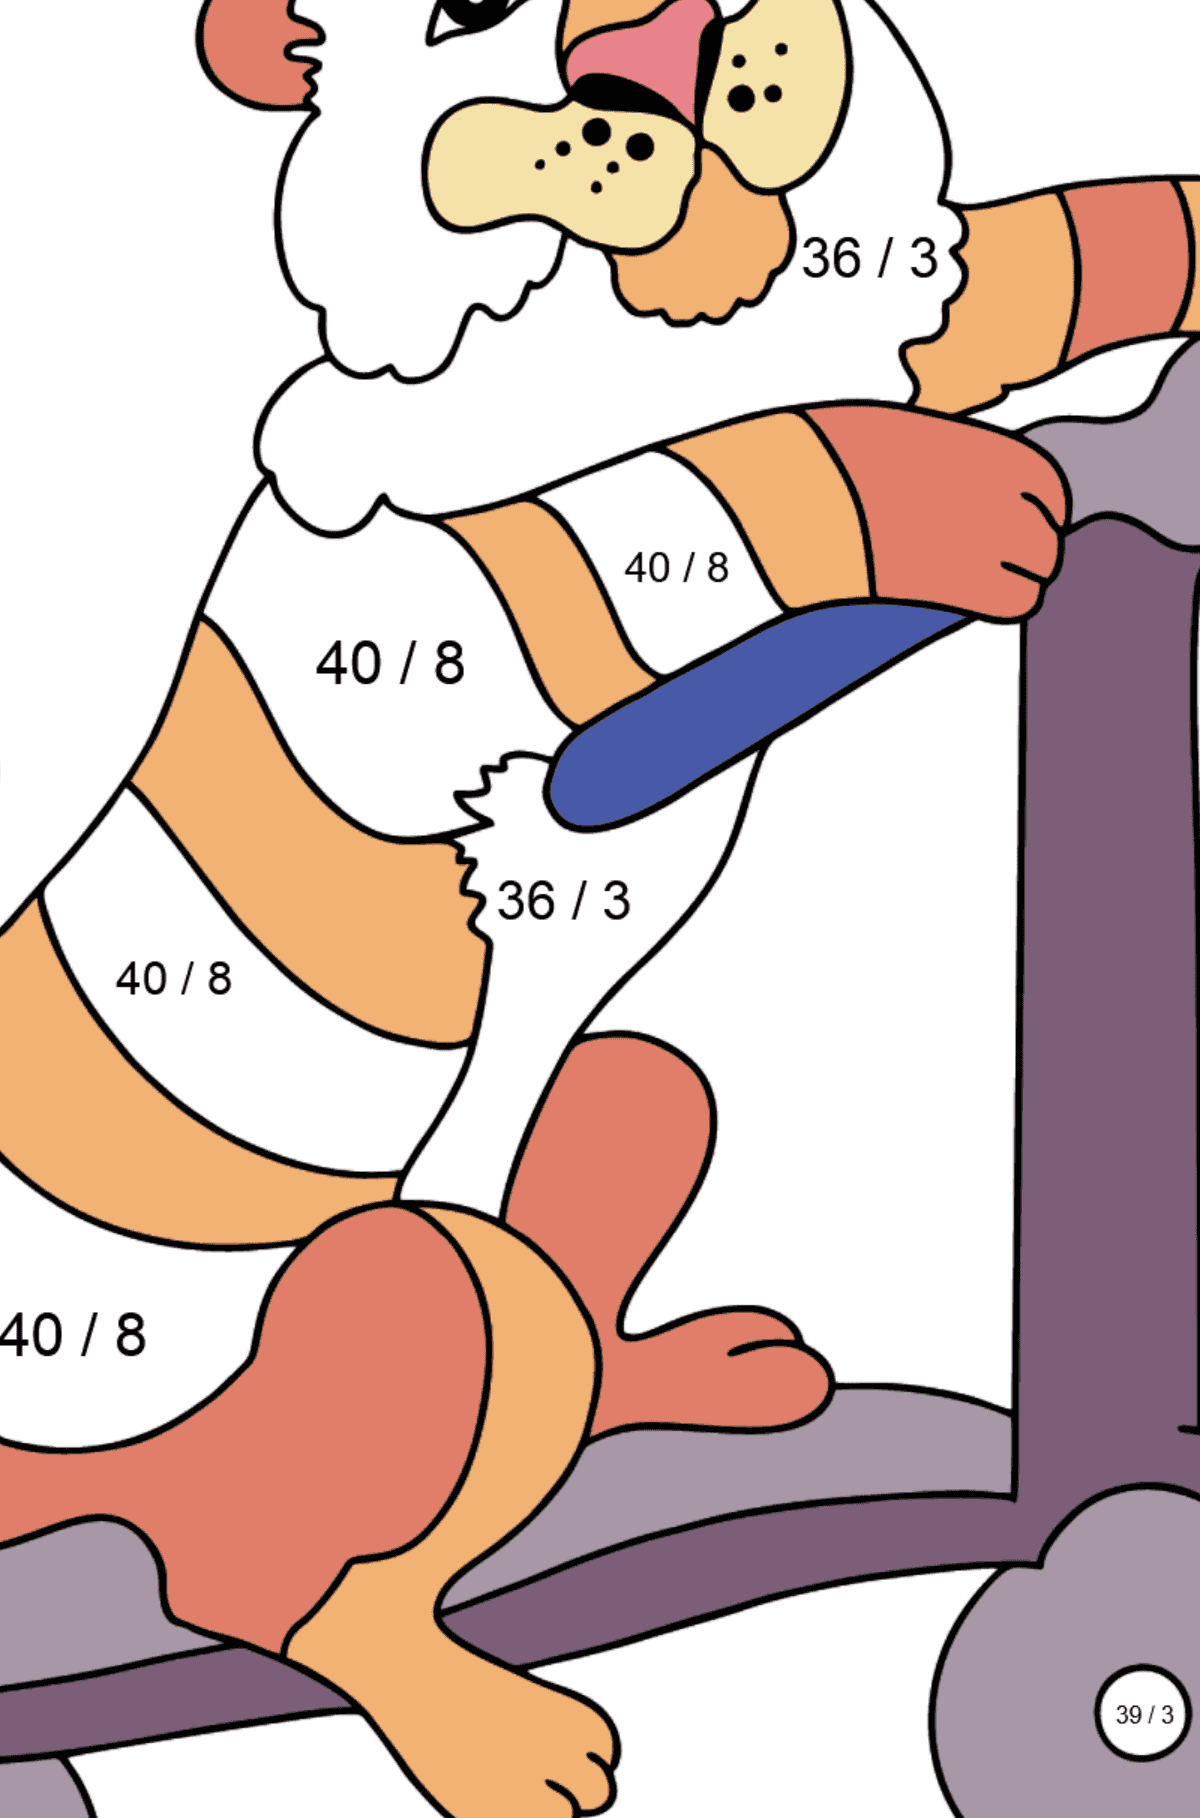 Coloring Page - A Tiger on a Fancy Scooter - Math Coloring - Division for Kids